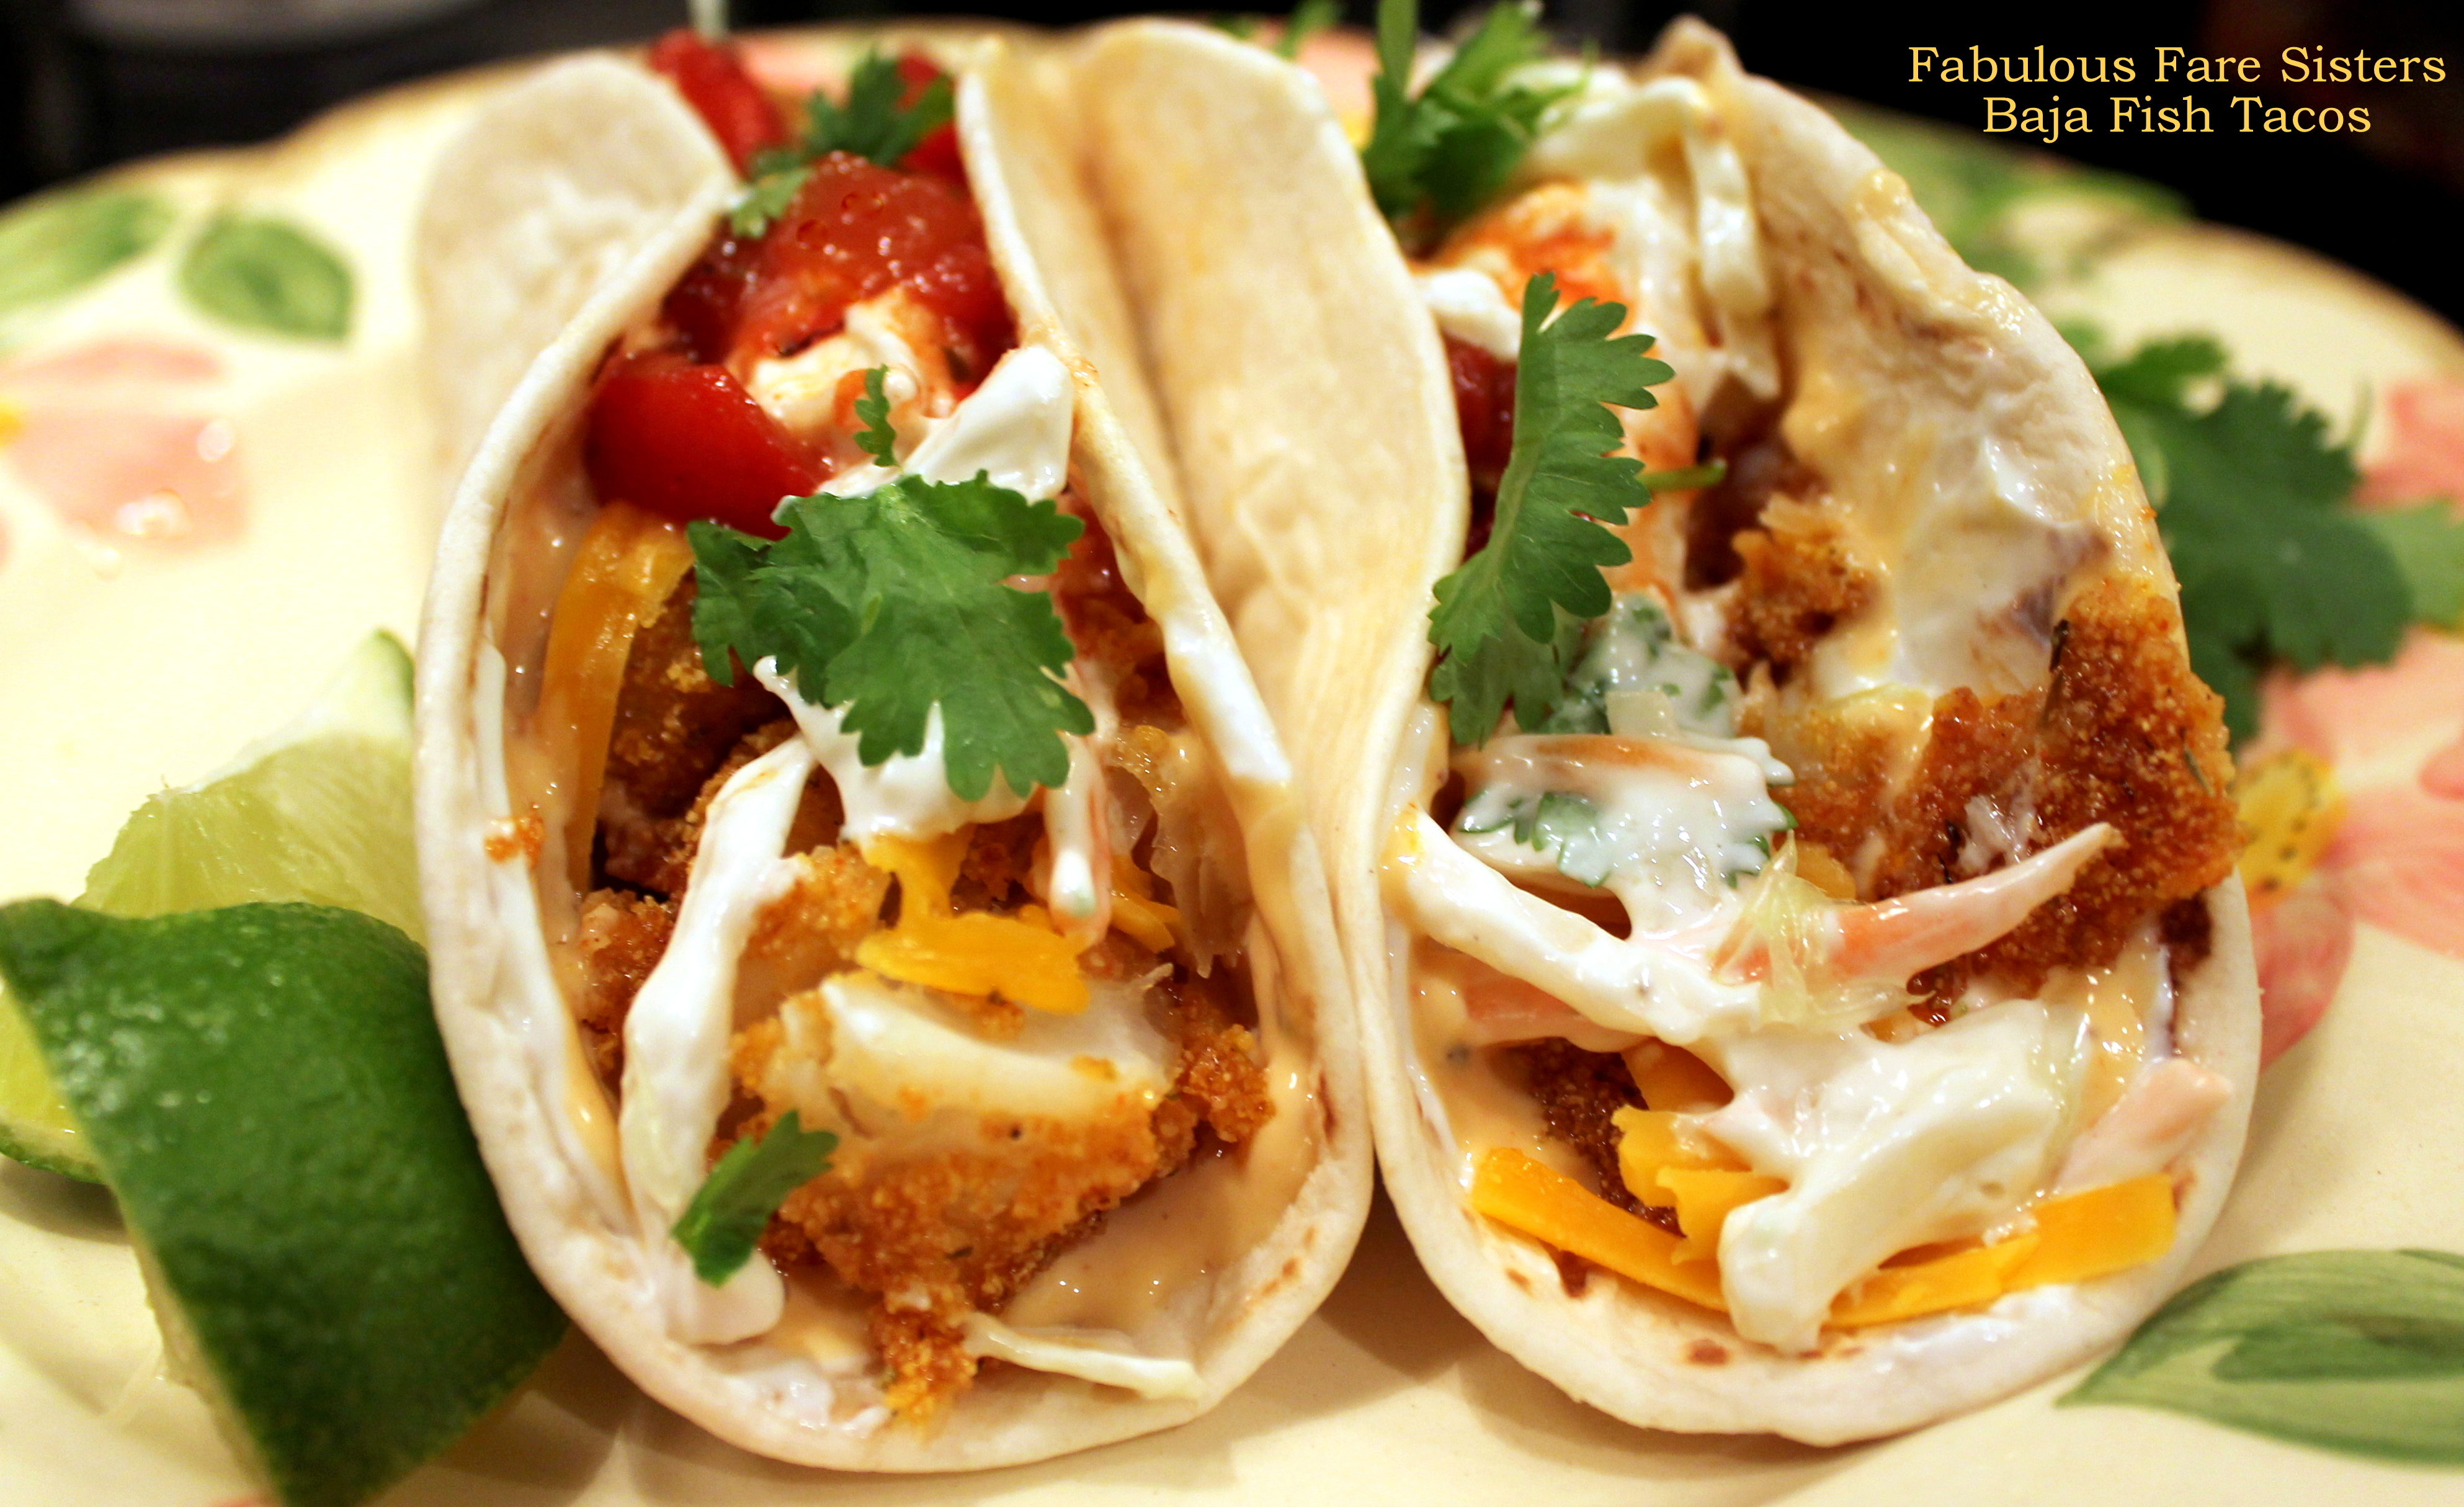 Taco tuesday baja fish tacos fabulous fare sisters for White fish tacos